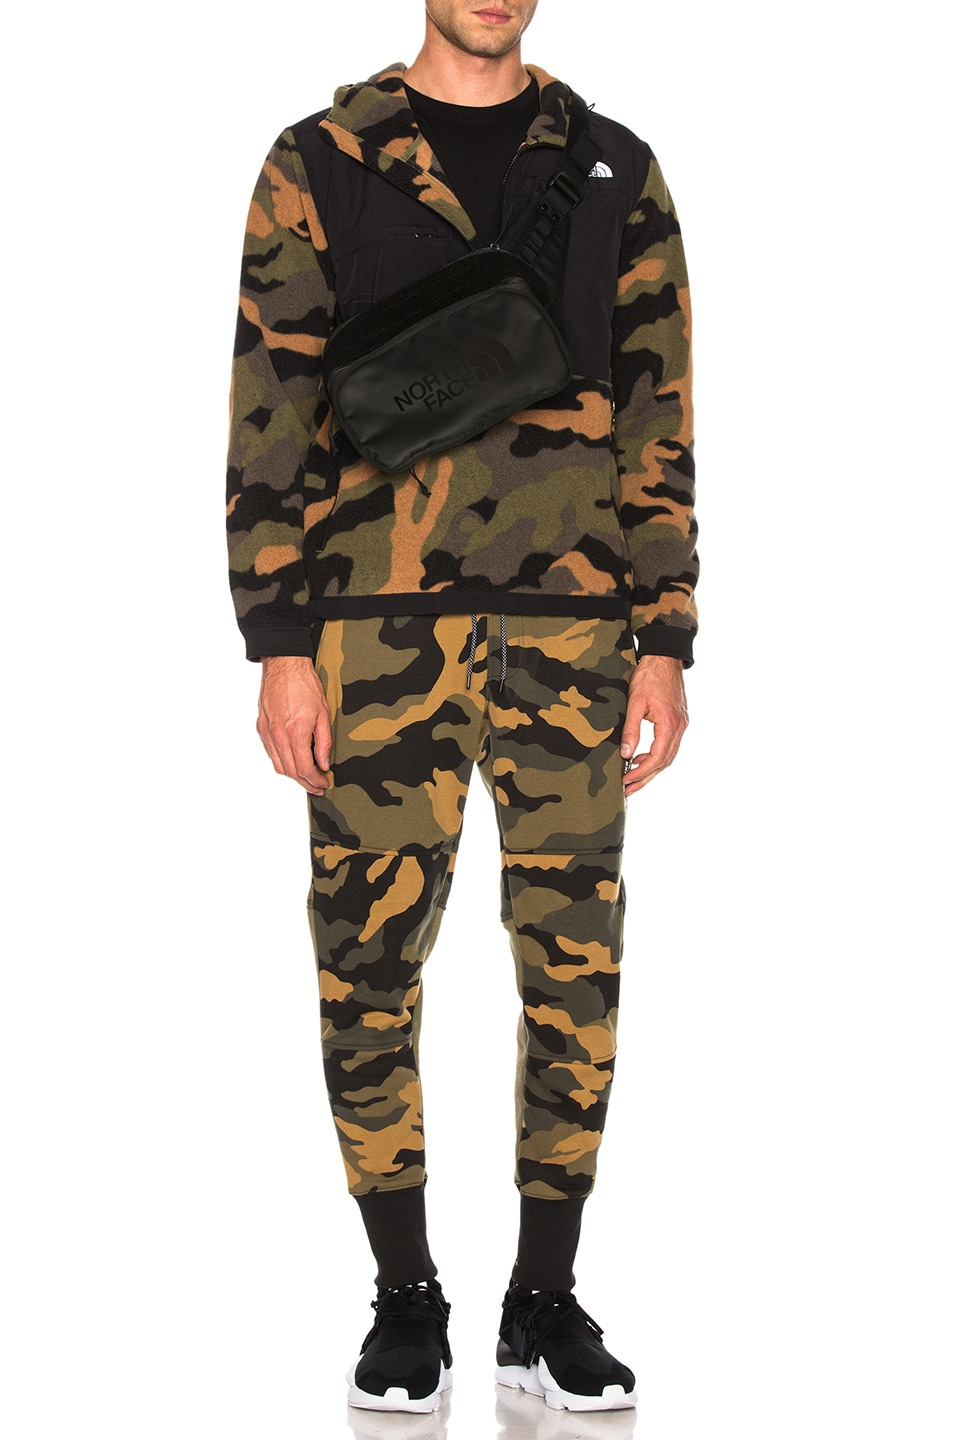 Image 5 of The North Face Denali Anorak in Burnt Olive Green Woods Camo Print